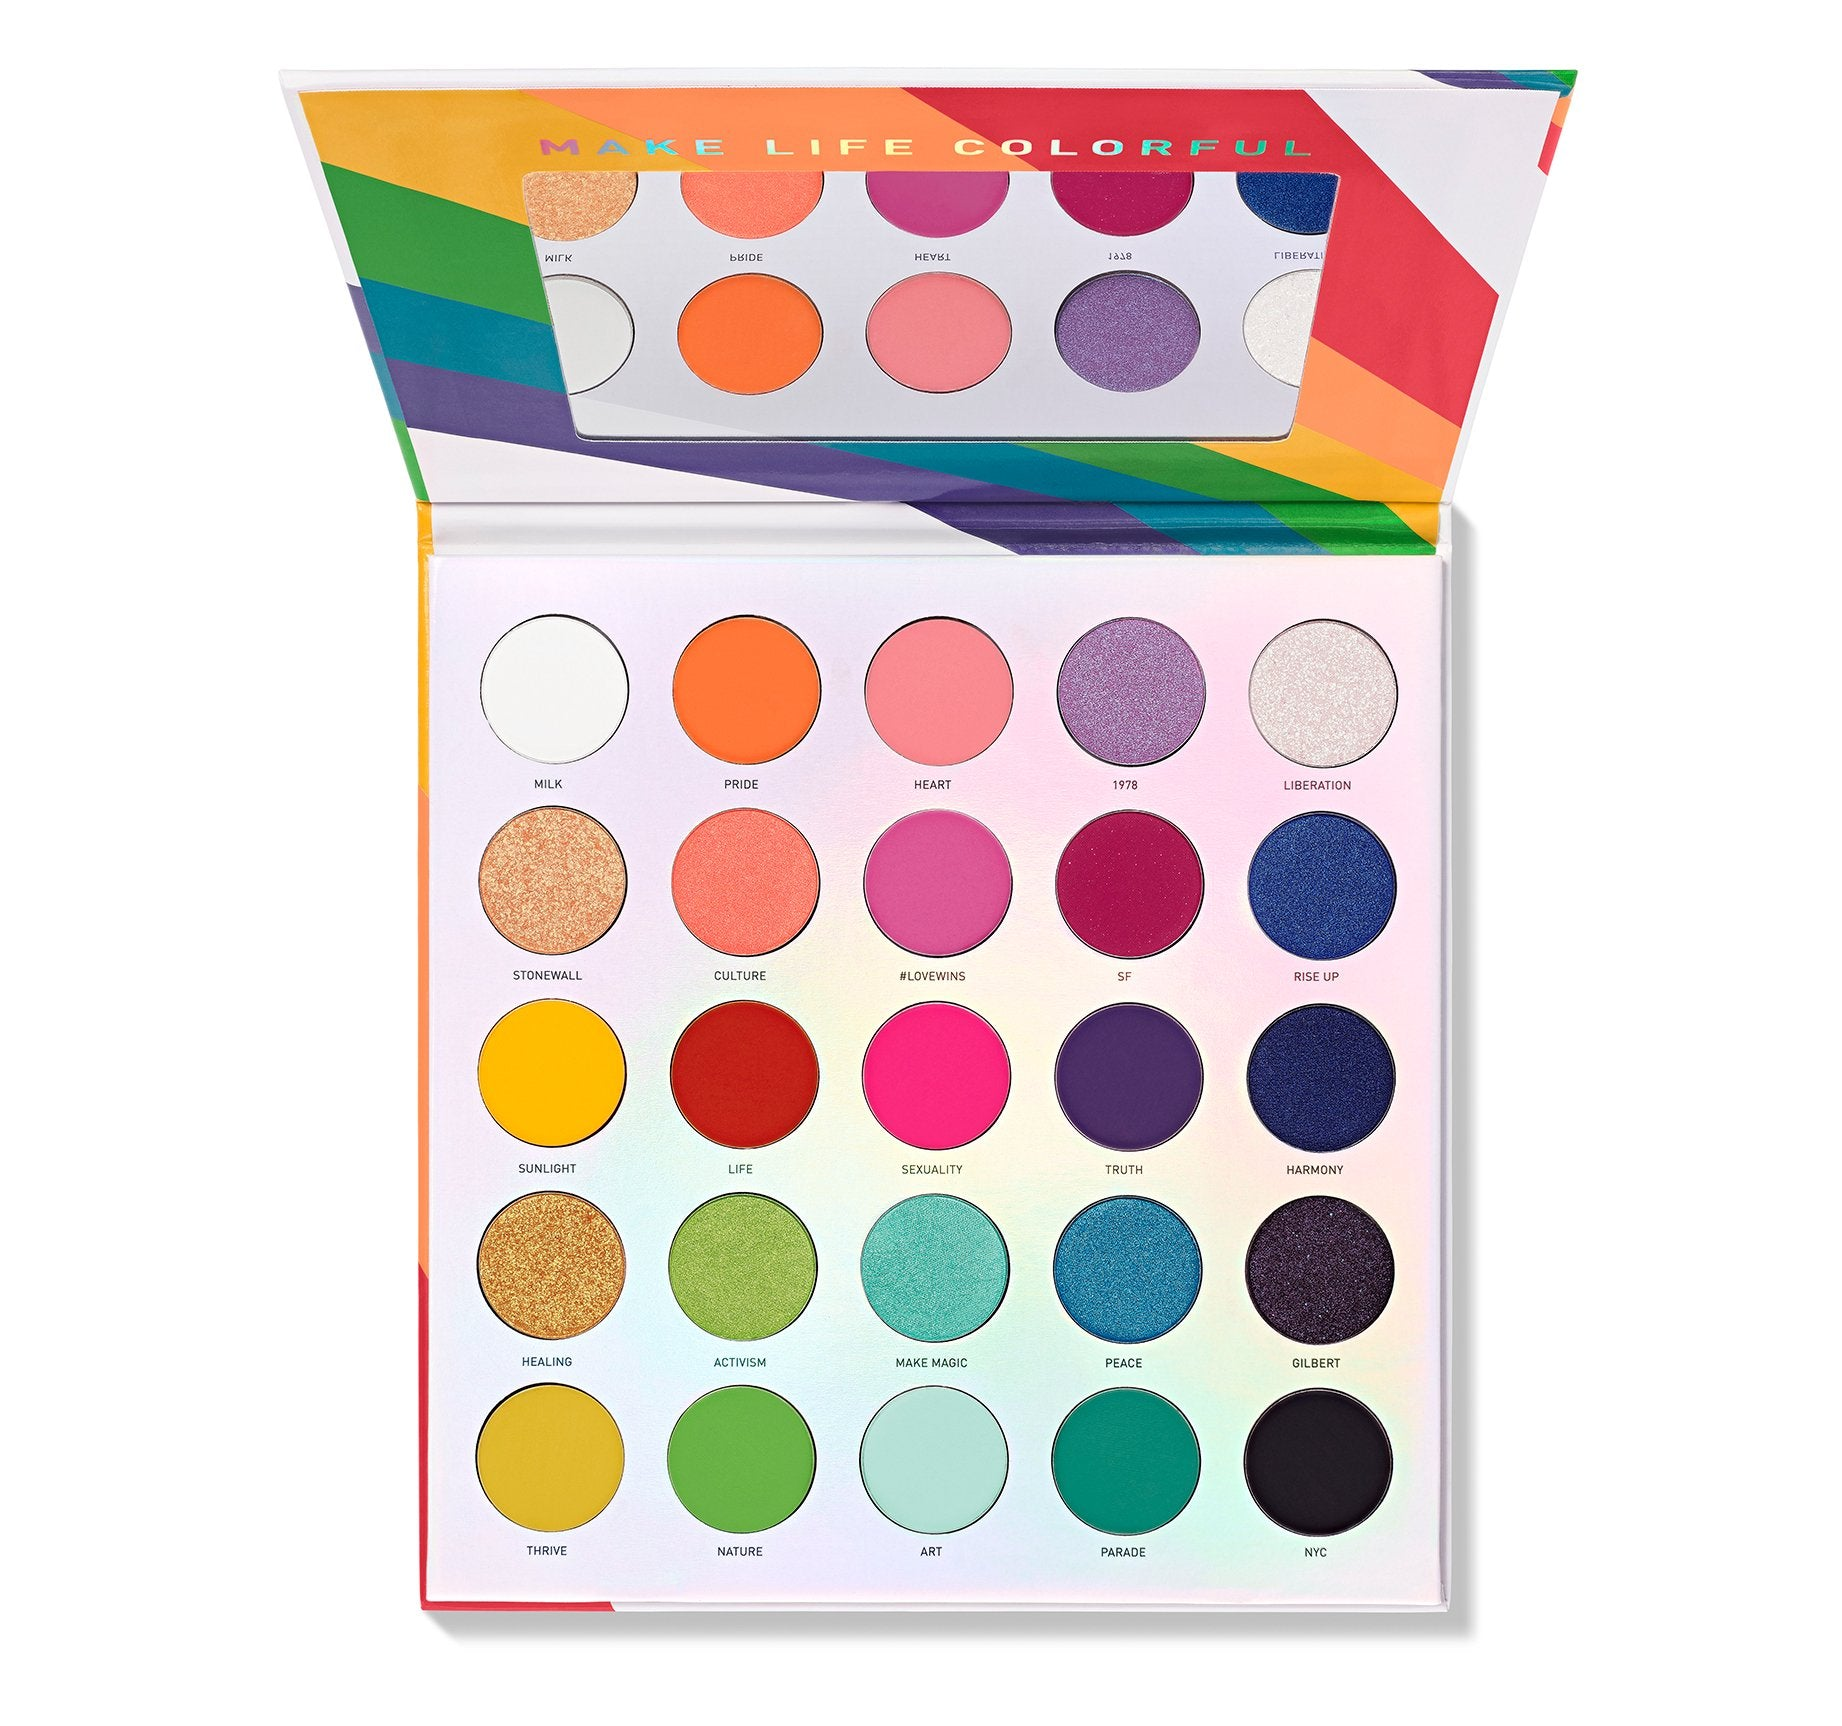 Morphe - 25L Live in Color Artistry Palette